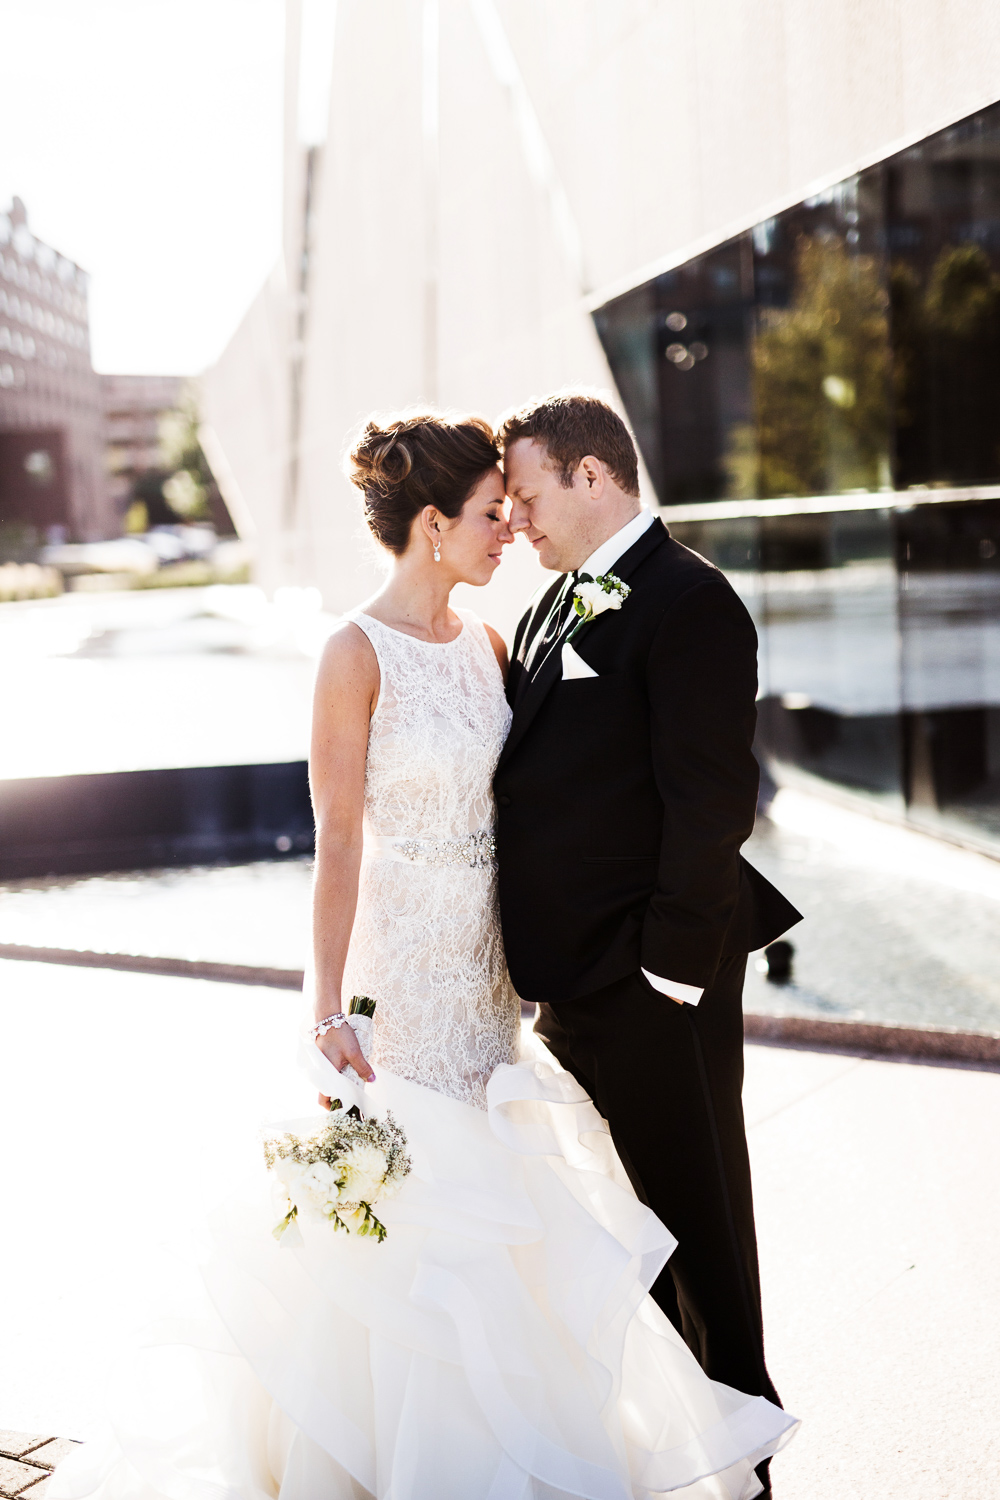 clewell minneapolis wedding photographer-2911630633339346.jpg